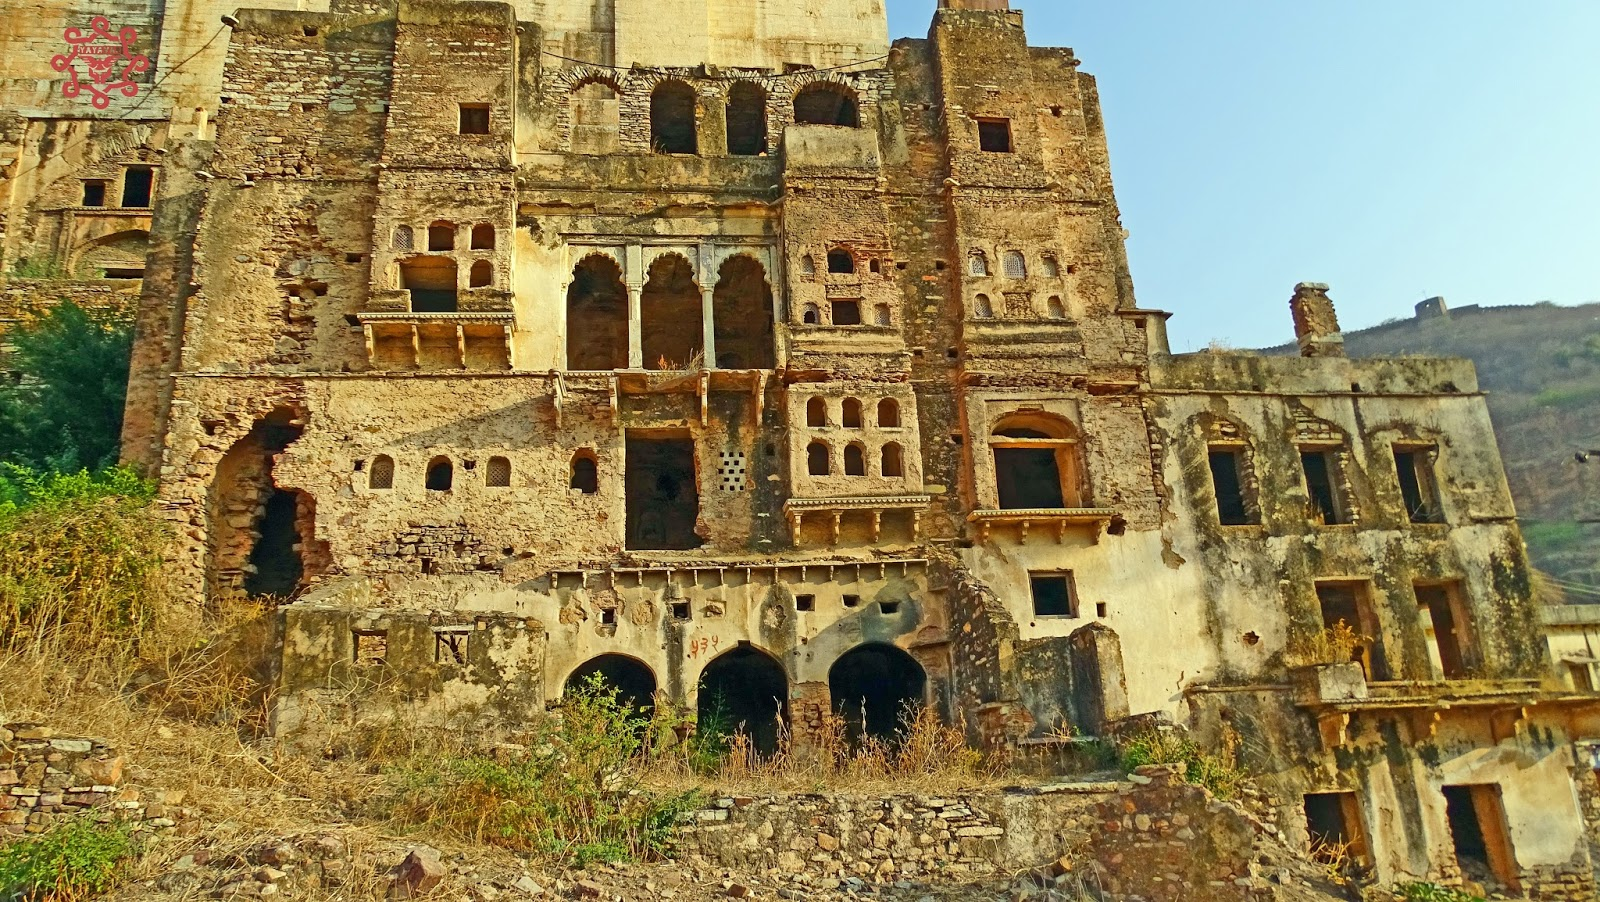 Bundi Fort Rajasthan